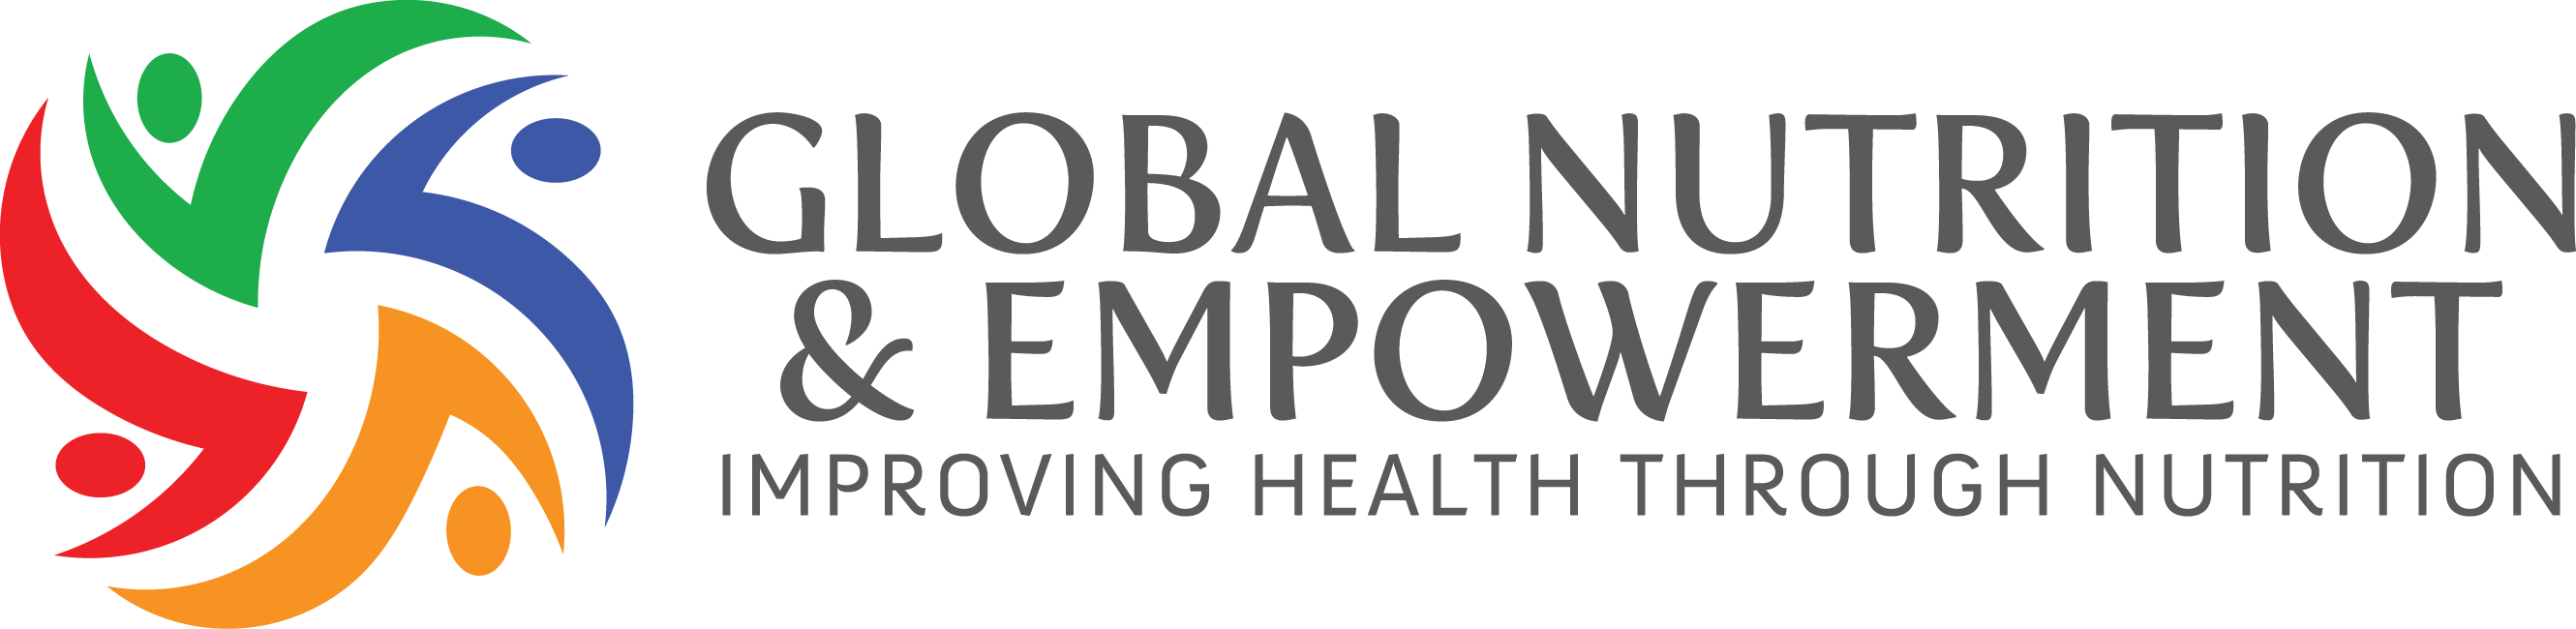 Global Nutrition and Empowerment